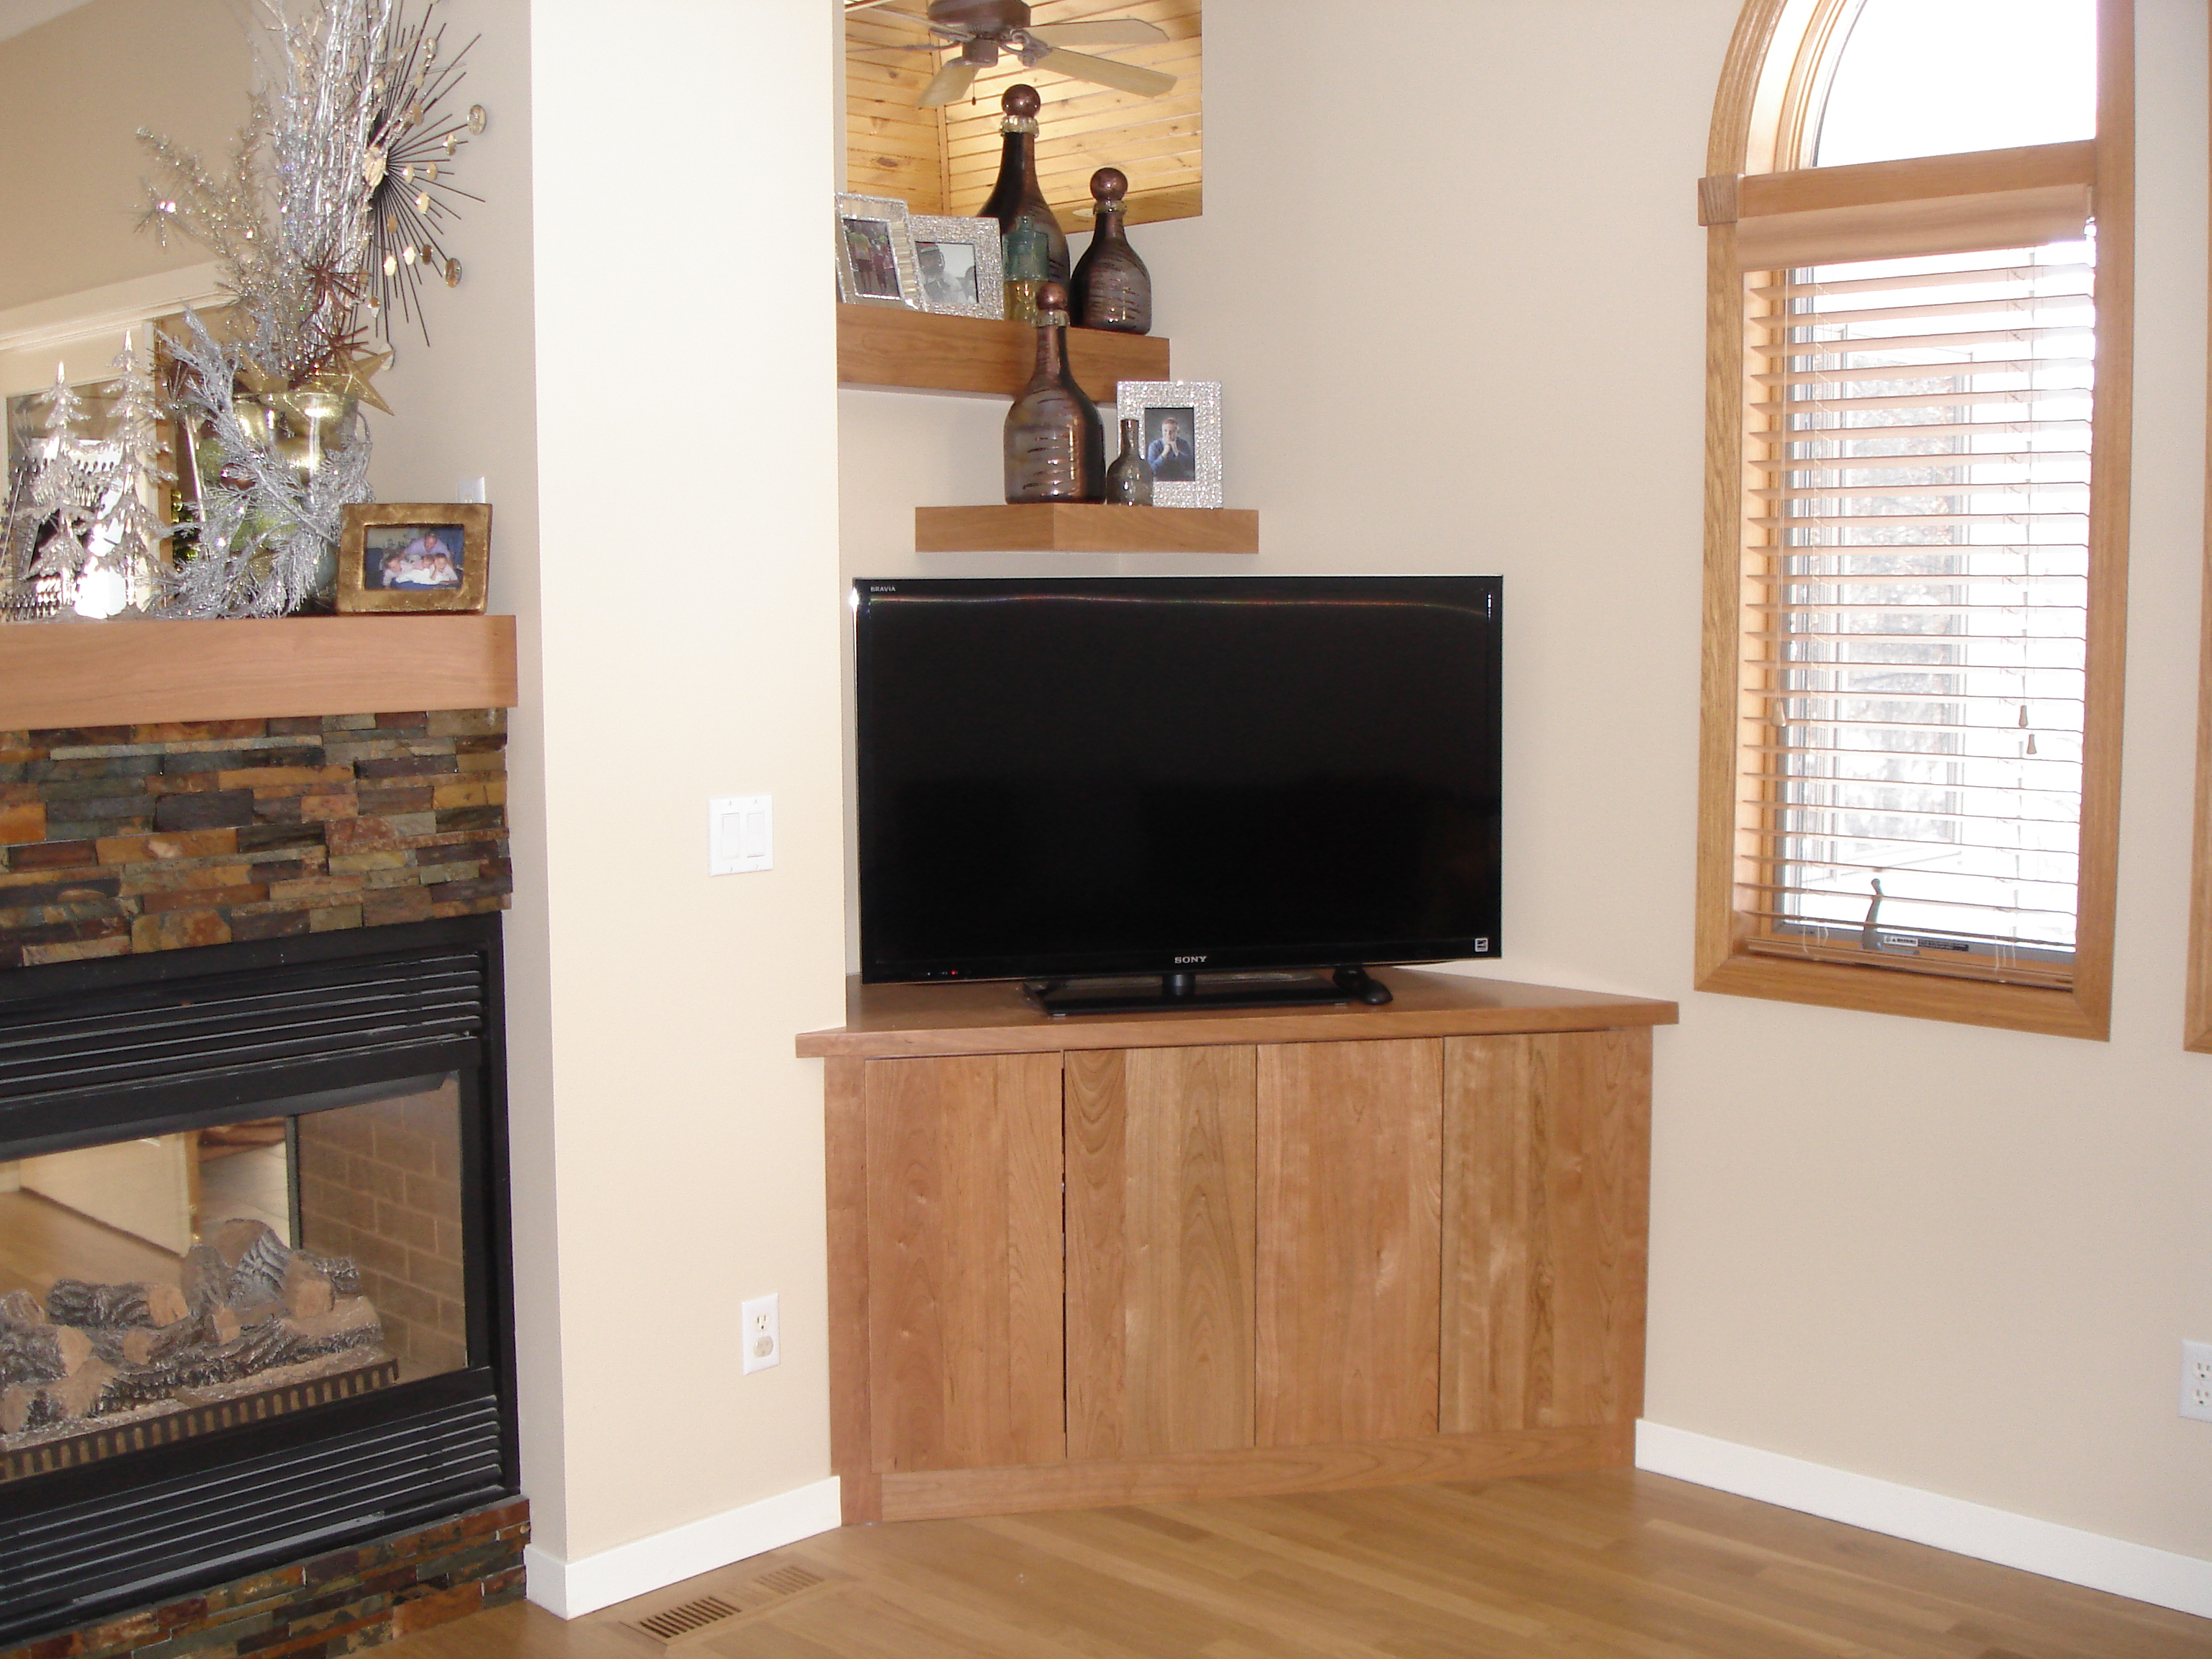 Here Valley Custom Cabinets Designed And Built A Custom Angled Base Cabinet  For Holding The Television. Cabinet Done In Cherry With A ...